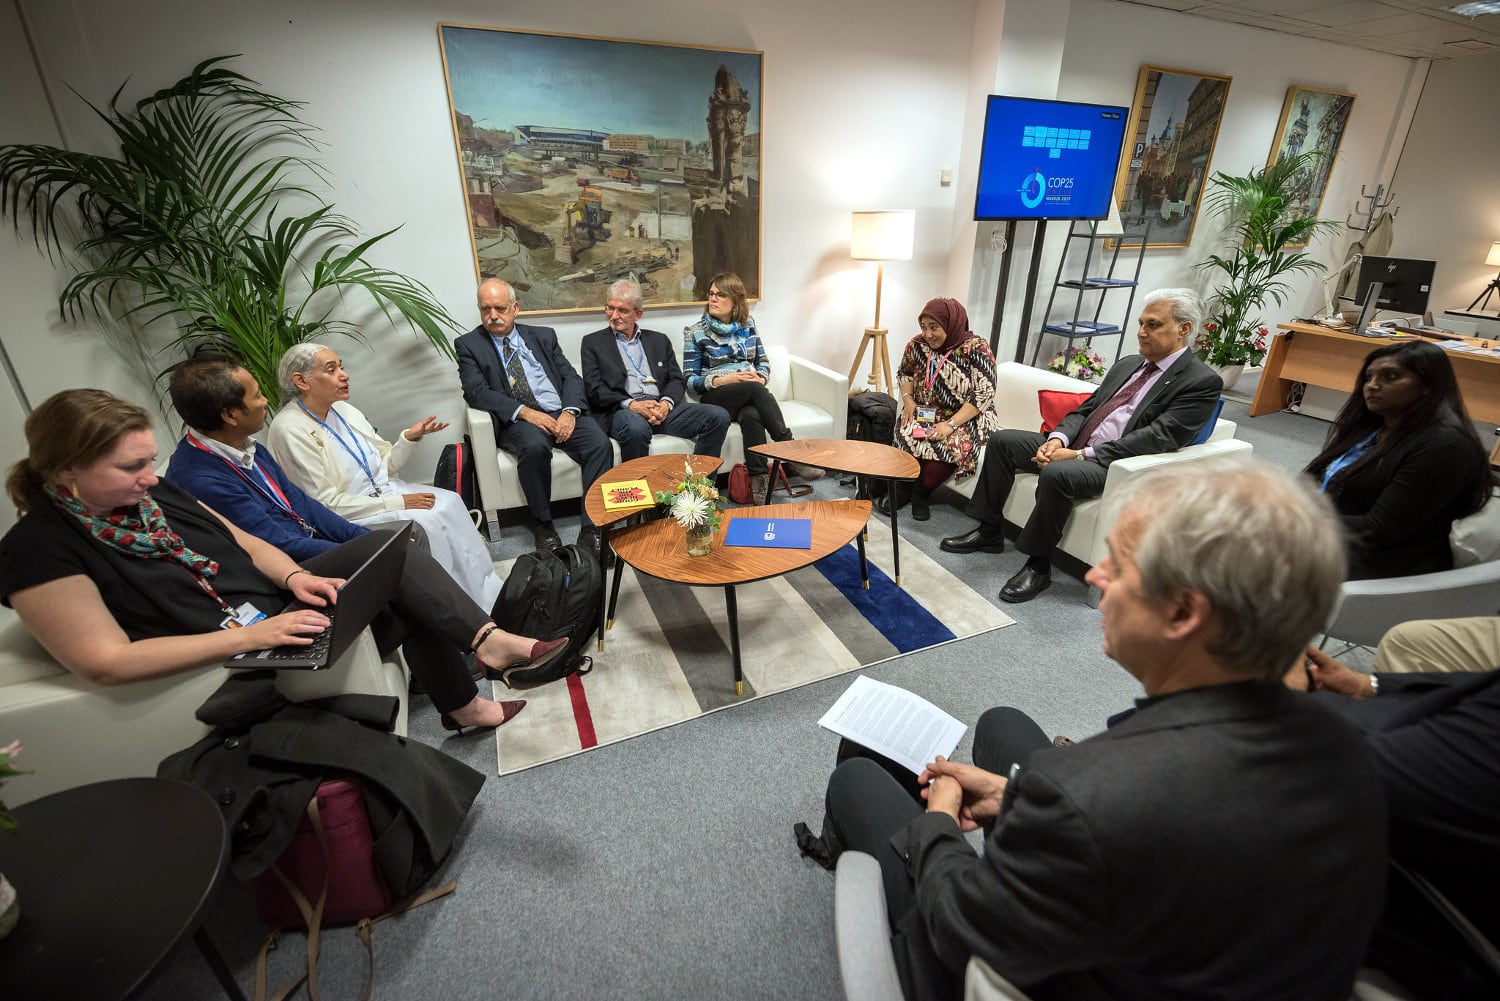 9 December 2019, Madrid, Spain: Religious leaders from a variety of faiths meet to hand over an interfaith declaration to Ovais Sarmad, deputy executive secretary of the UNFCCC, at COP25. Here, Jayanti Murli Kirpalani from Brahma Kumaris (left).